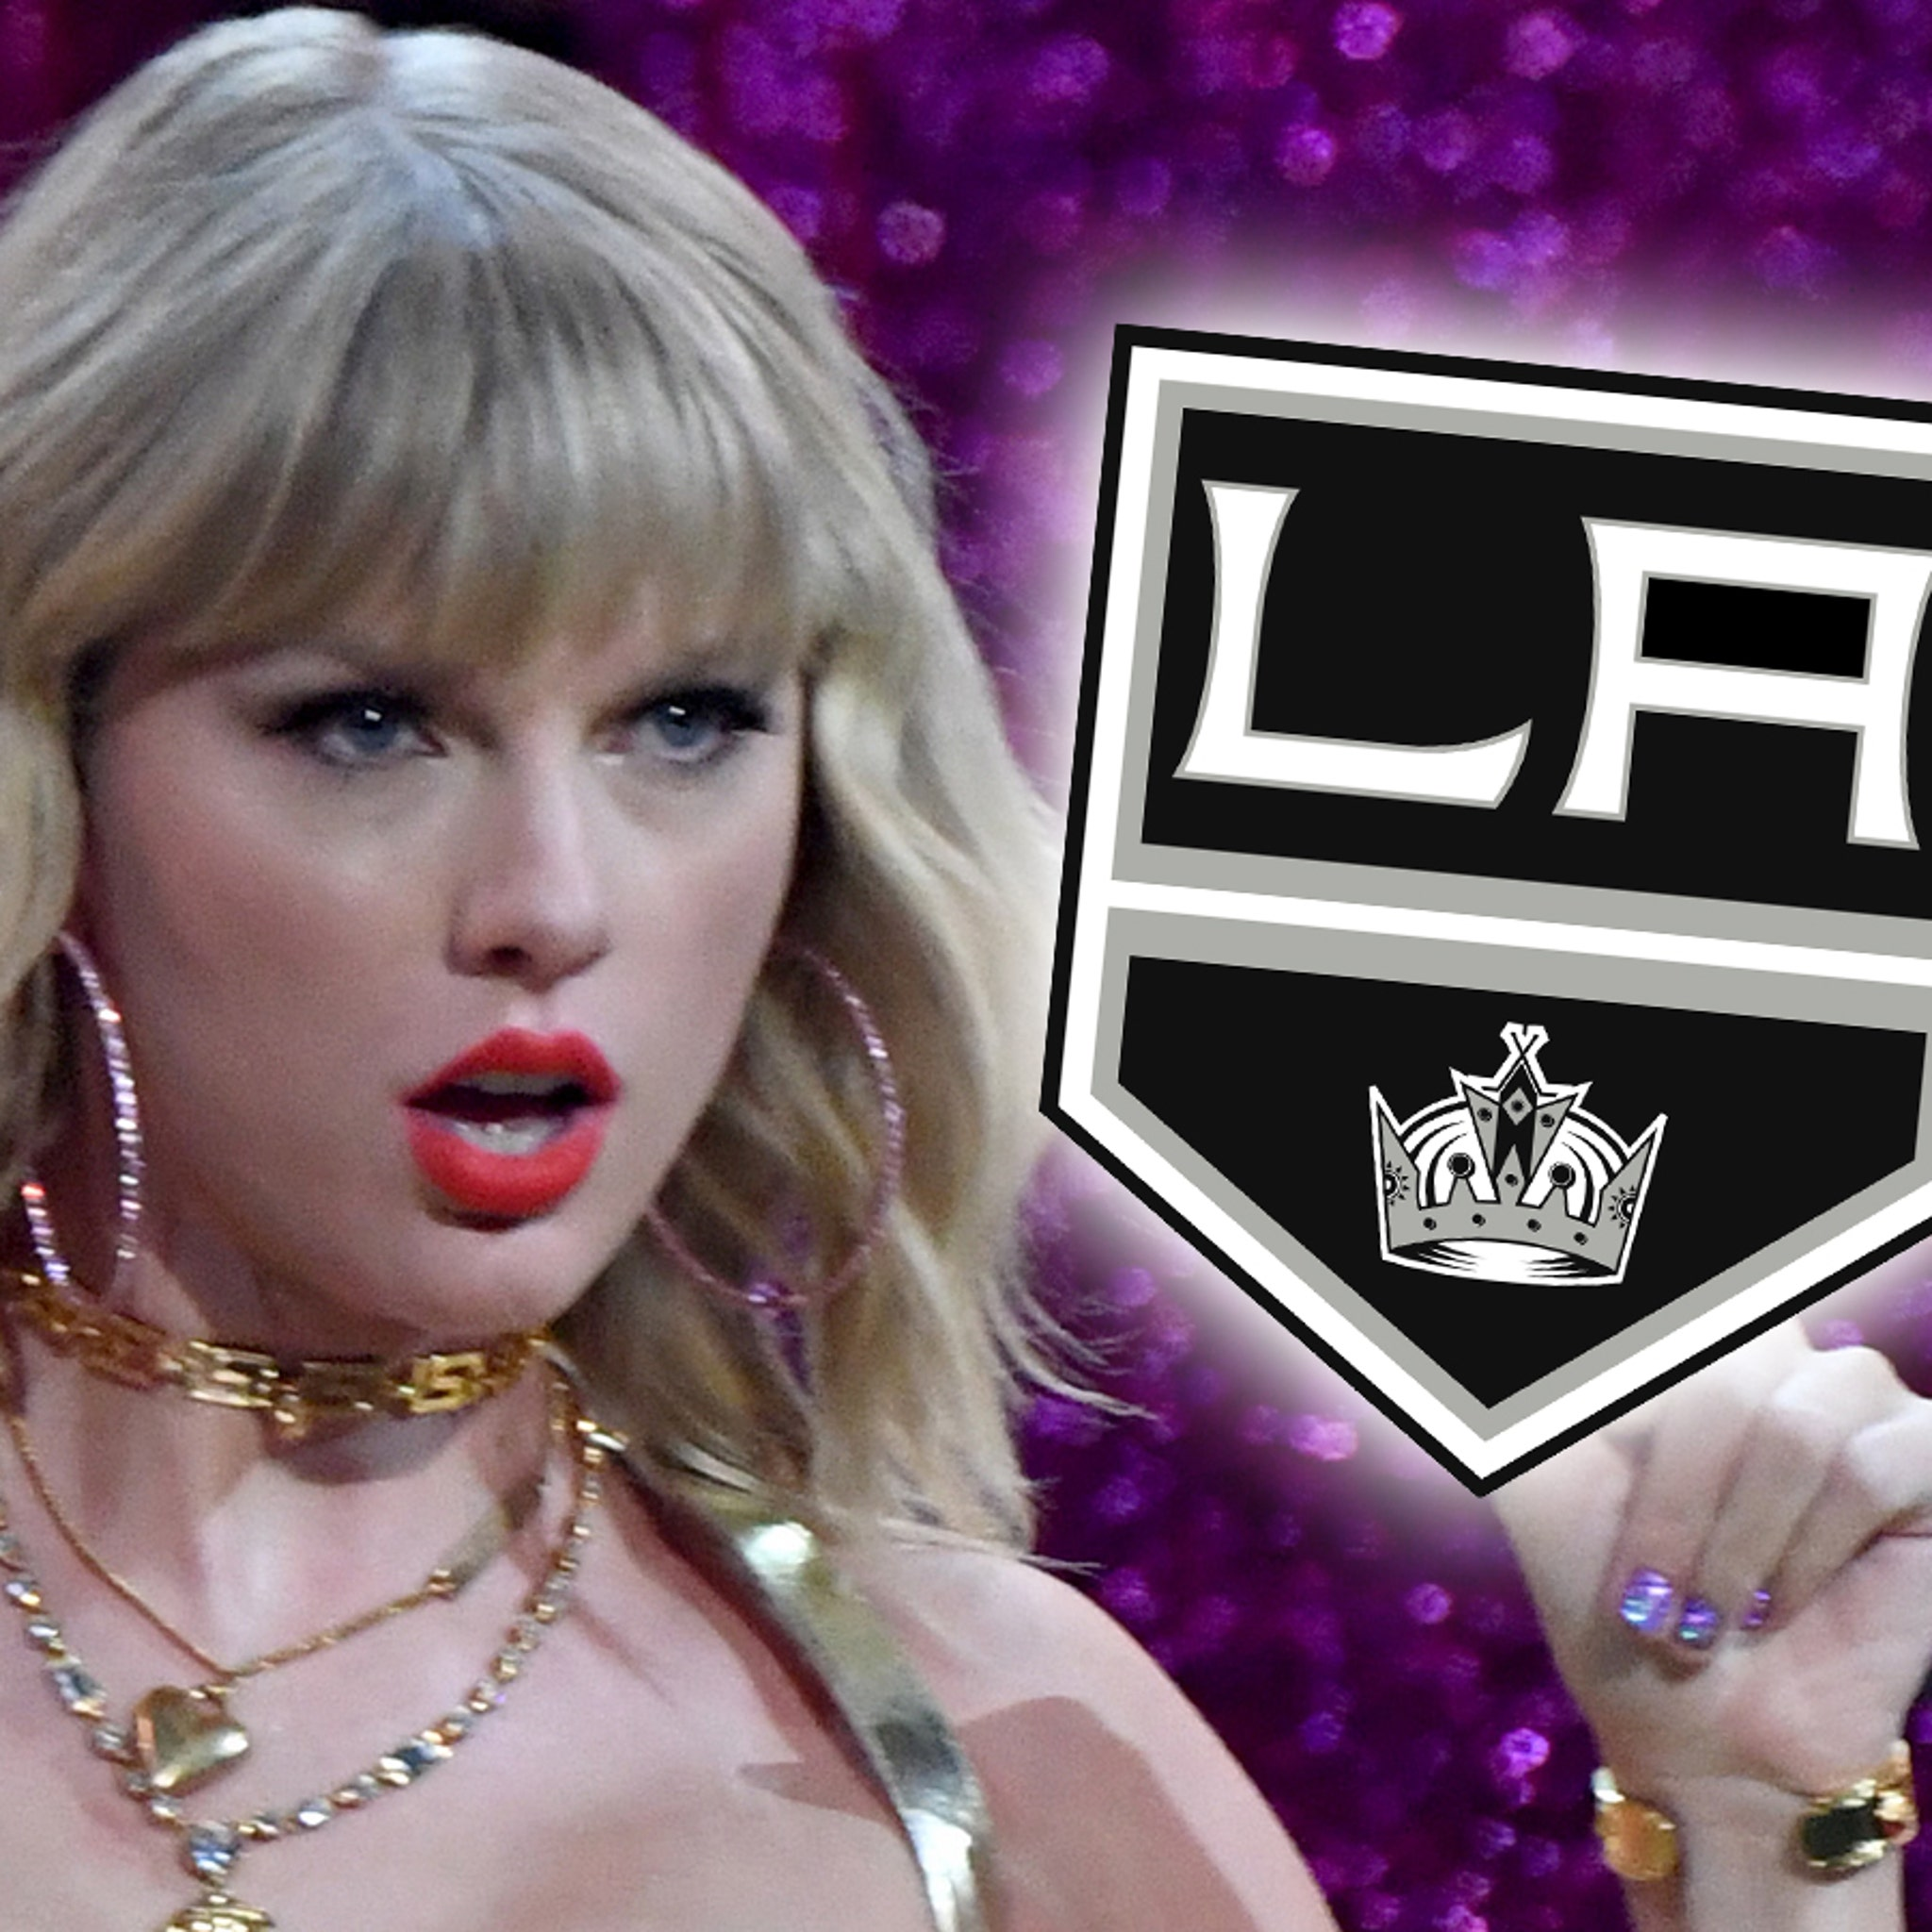 Taylor Swift Staples Center Banner to Be Covered During L.A. Kings Games